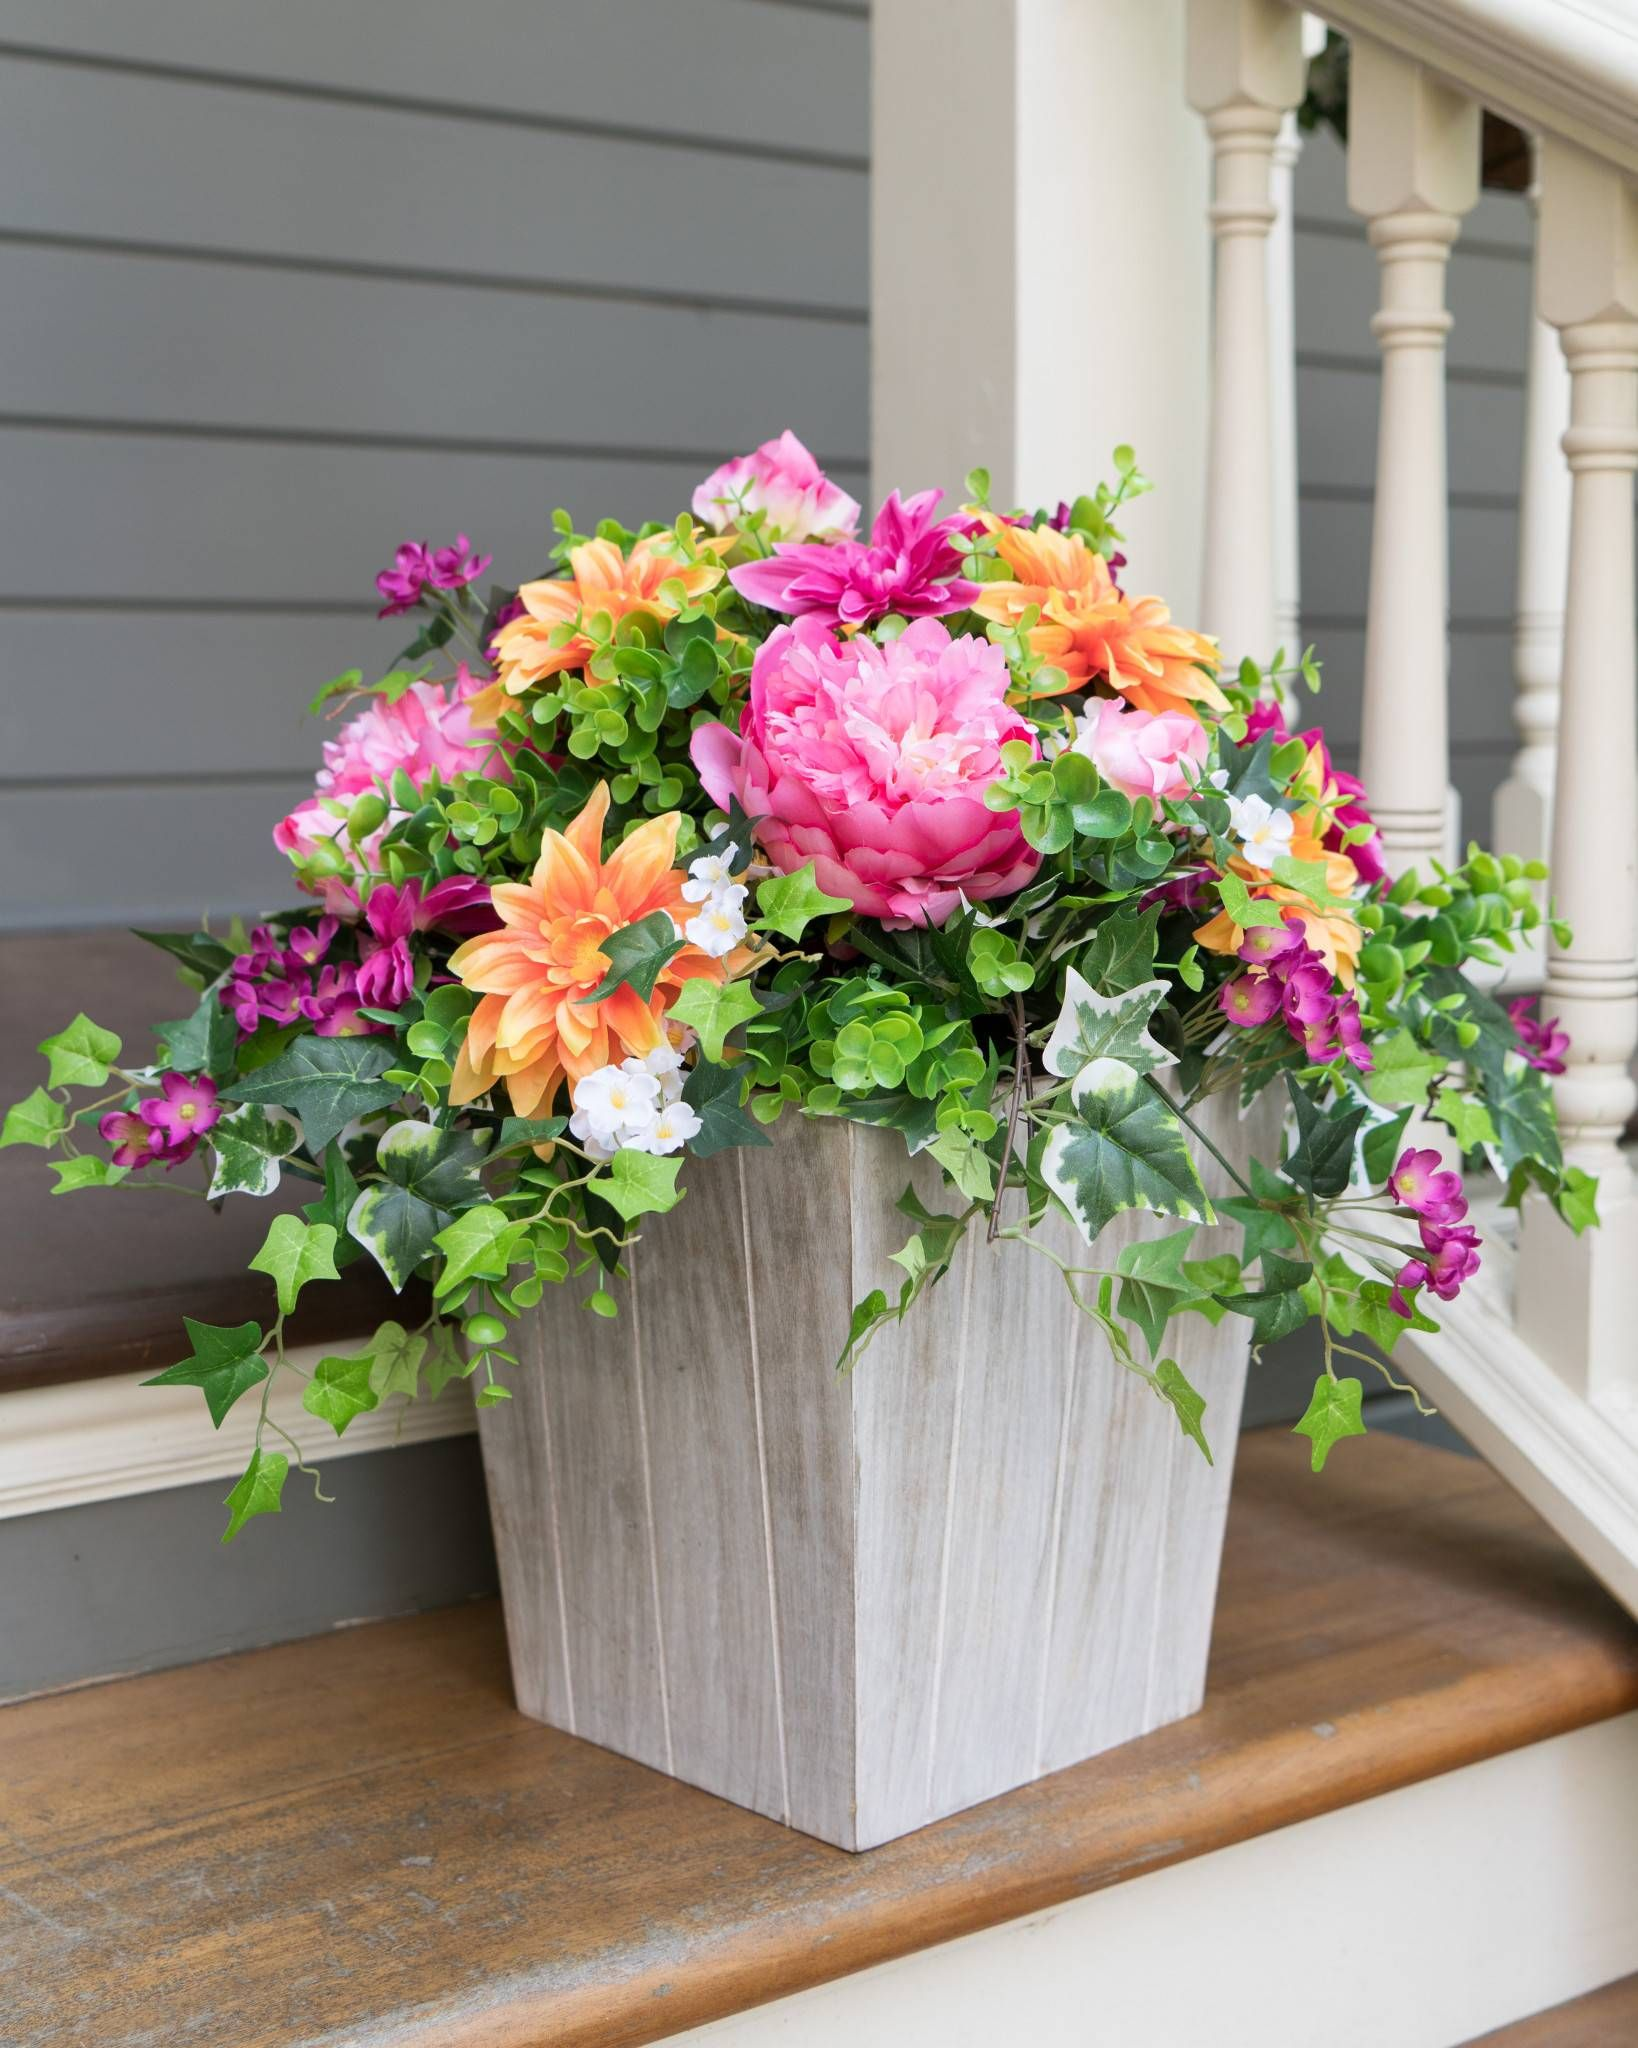 Outdoor Radiant Peony Artificial Flower Wreaths Balsam Hill In 2020 Artificial Plants Decor Artificial Flower Arrangements Artificial Plants Outdoor